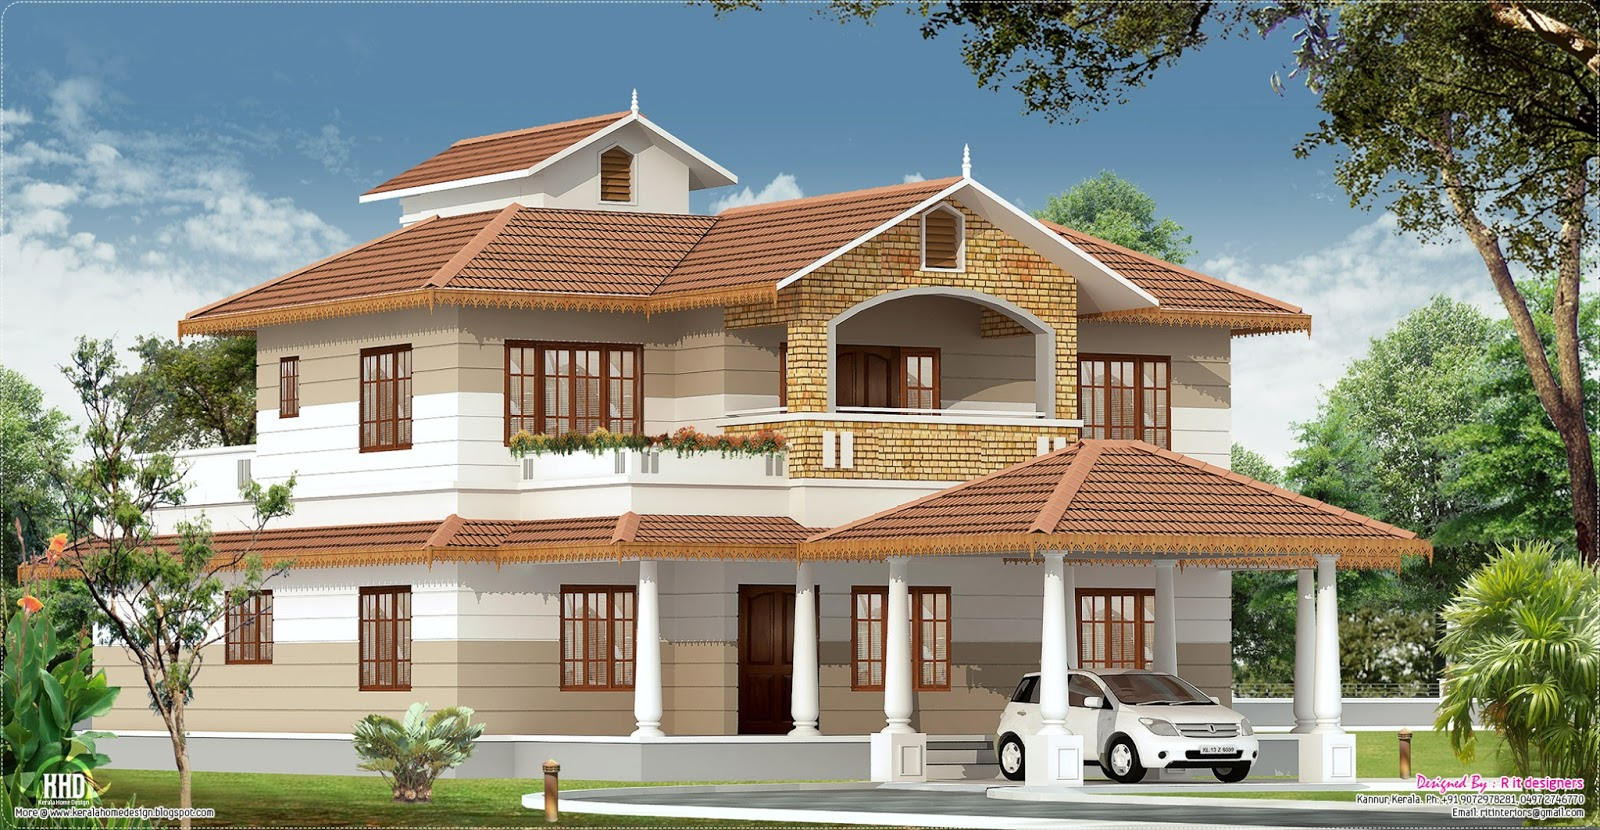 2700 kerala home with interior designs kerala for Kerala house model plan